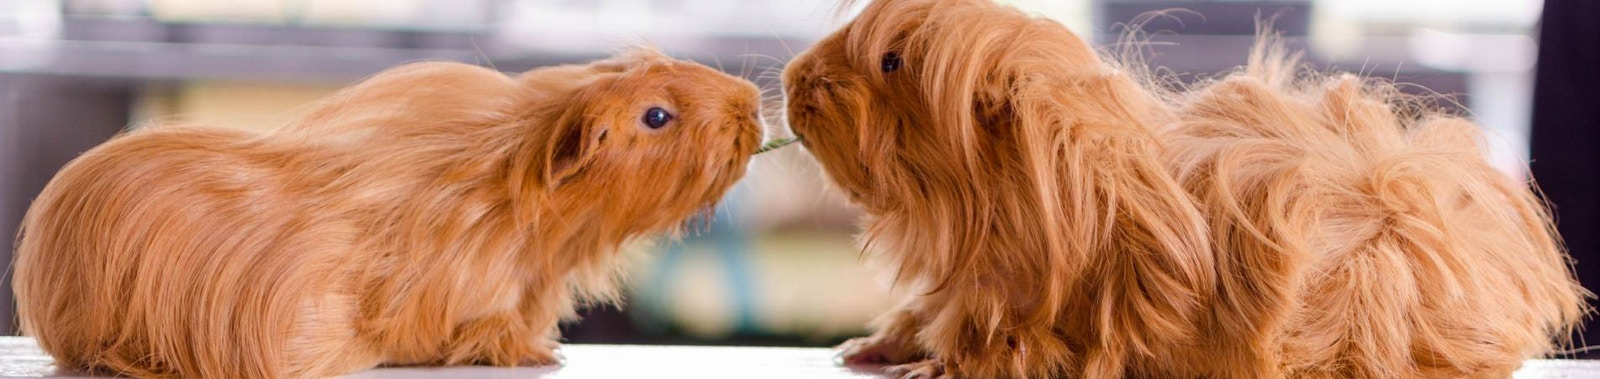 Caring for Your Guinea Pig: What You Need to Know